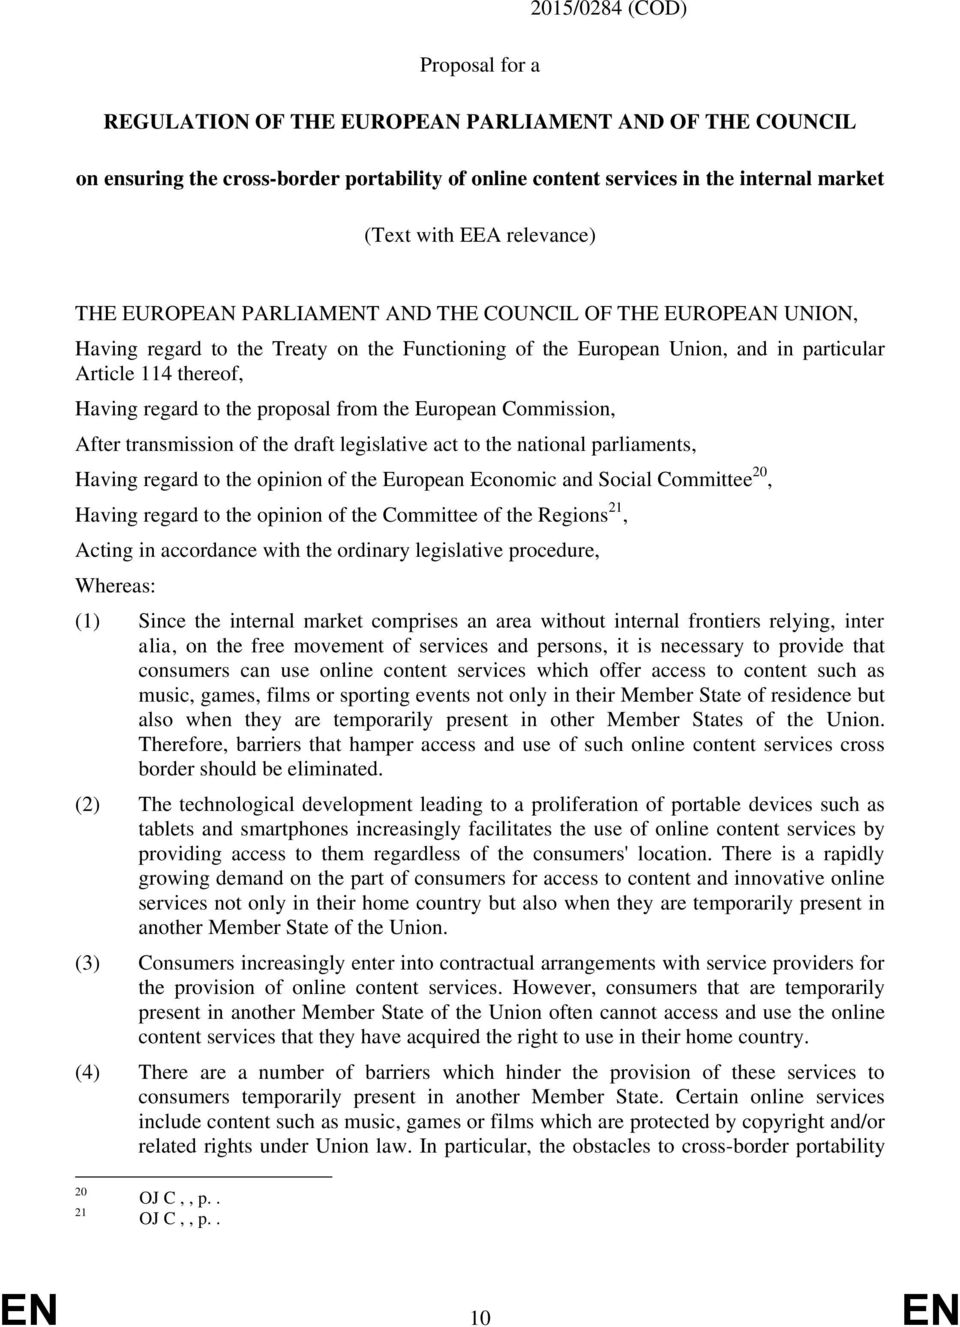 the proposal from the European Commission, After transmission of the draft legislative act to the national parliaments, Having regard to the opinion of the European Economic and Social Committee 20,